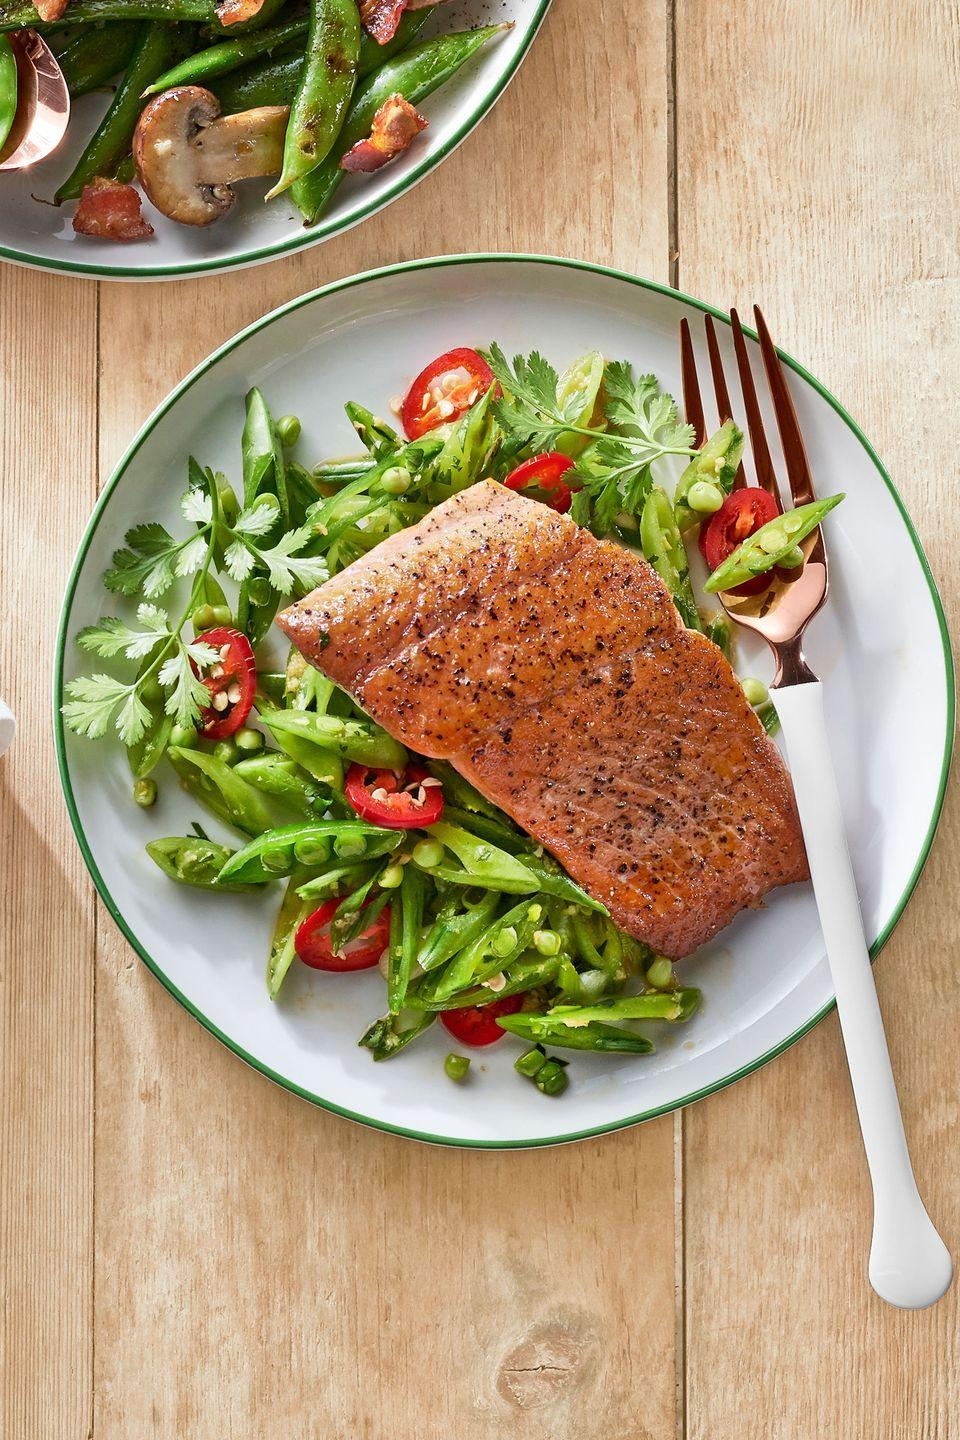 "<p>Bring a little snap (peas) to the table with this quick and easy dinner.</p><p><a href=""https://www.countryliving.com/food-drinks/recipes/a37755/gingery-snap-pea-slaw-with-seared-salmon-recipe/"" rel=""nofollow noopener"" target=""_blank"" data-ylk=""slk:Get the recipe."" class=""link rapid-noclick-resp""><strong>Get the recipe.</strong></a></p>"